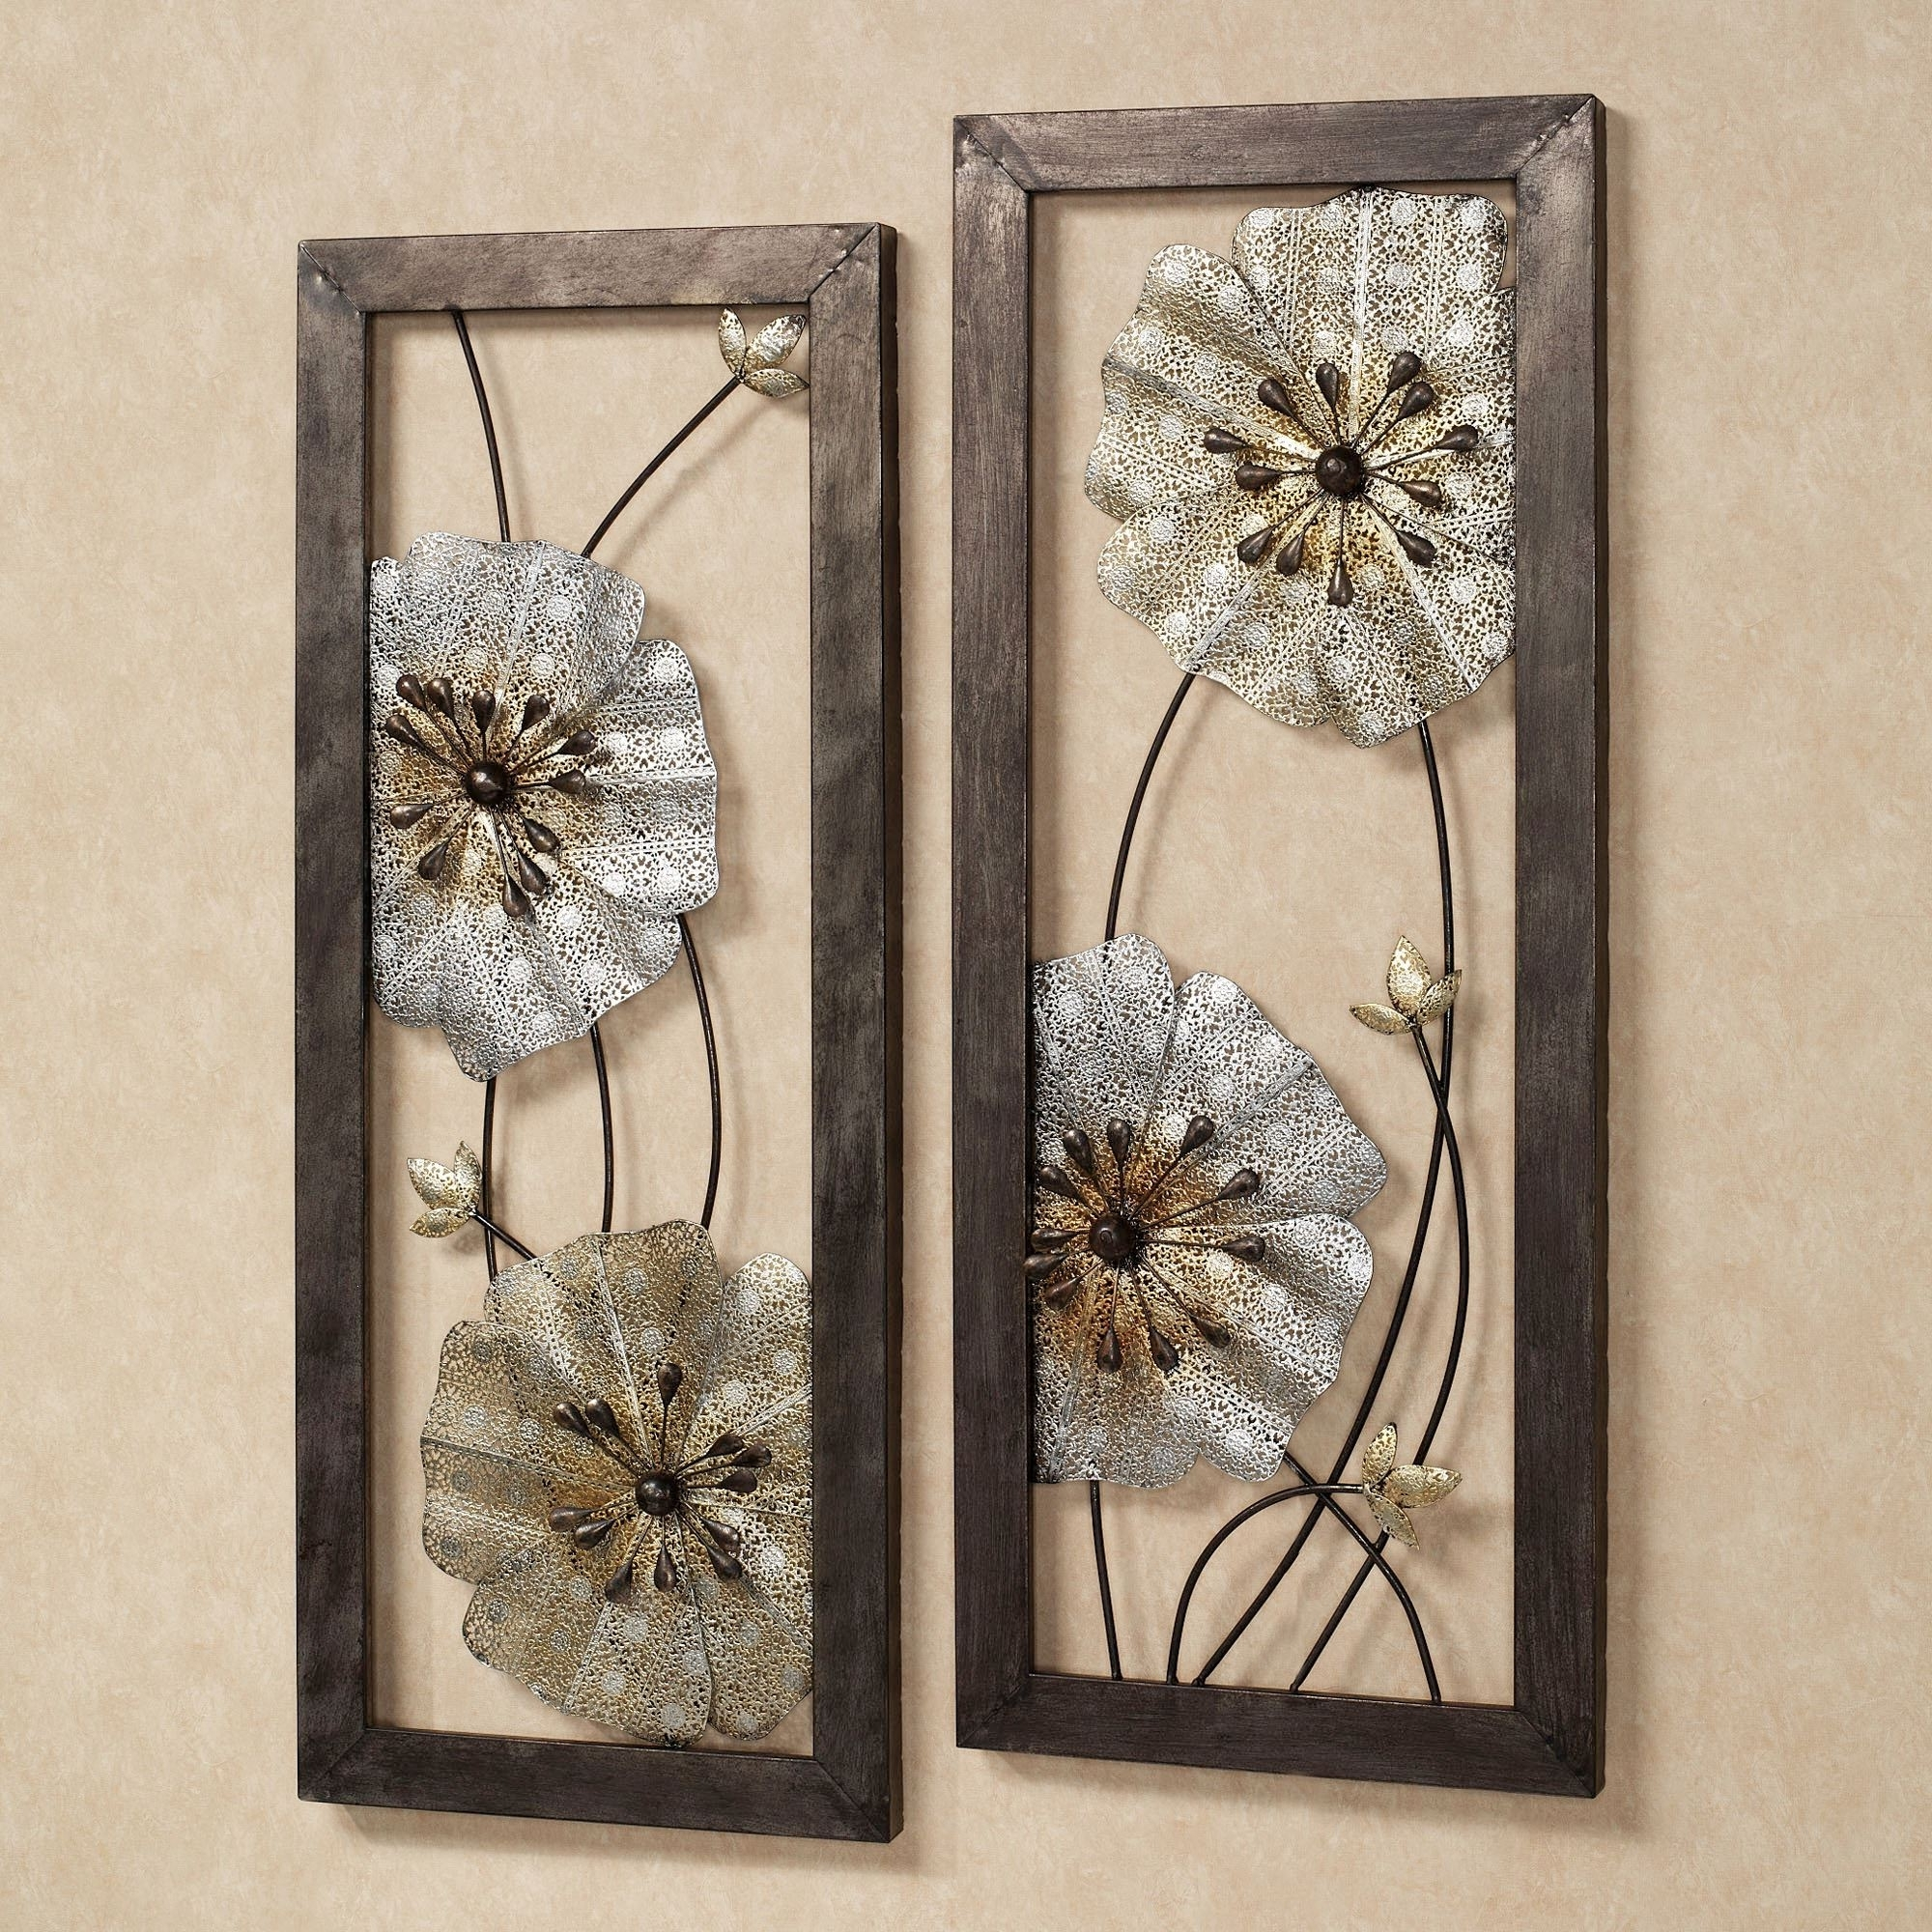 Malacia Openwork Floral Metal Wall Art Set Intended For Fashionable Metallic Wall Art (View 5 of 15)